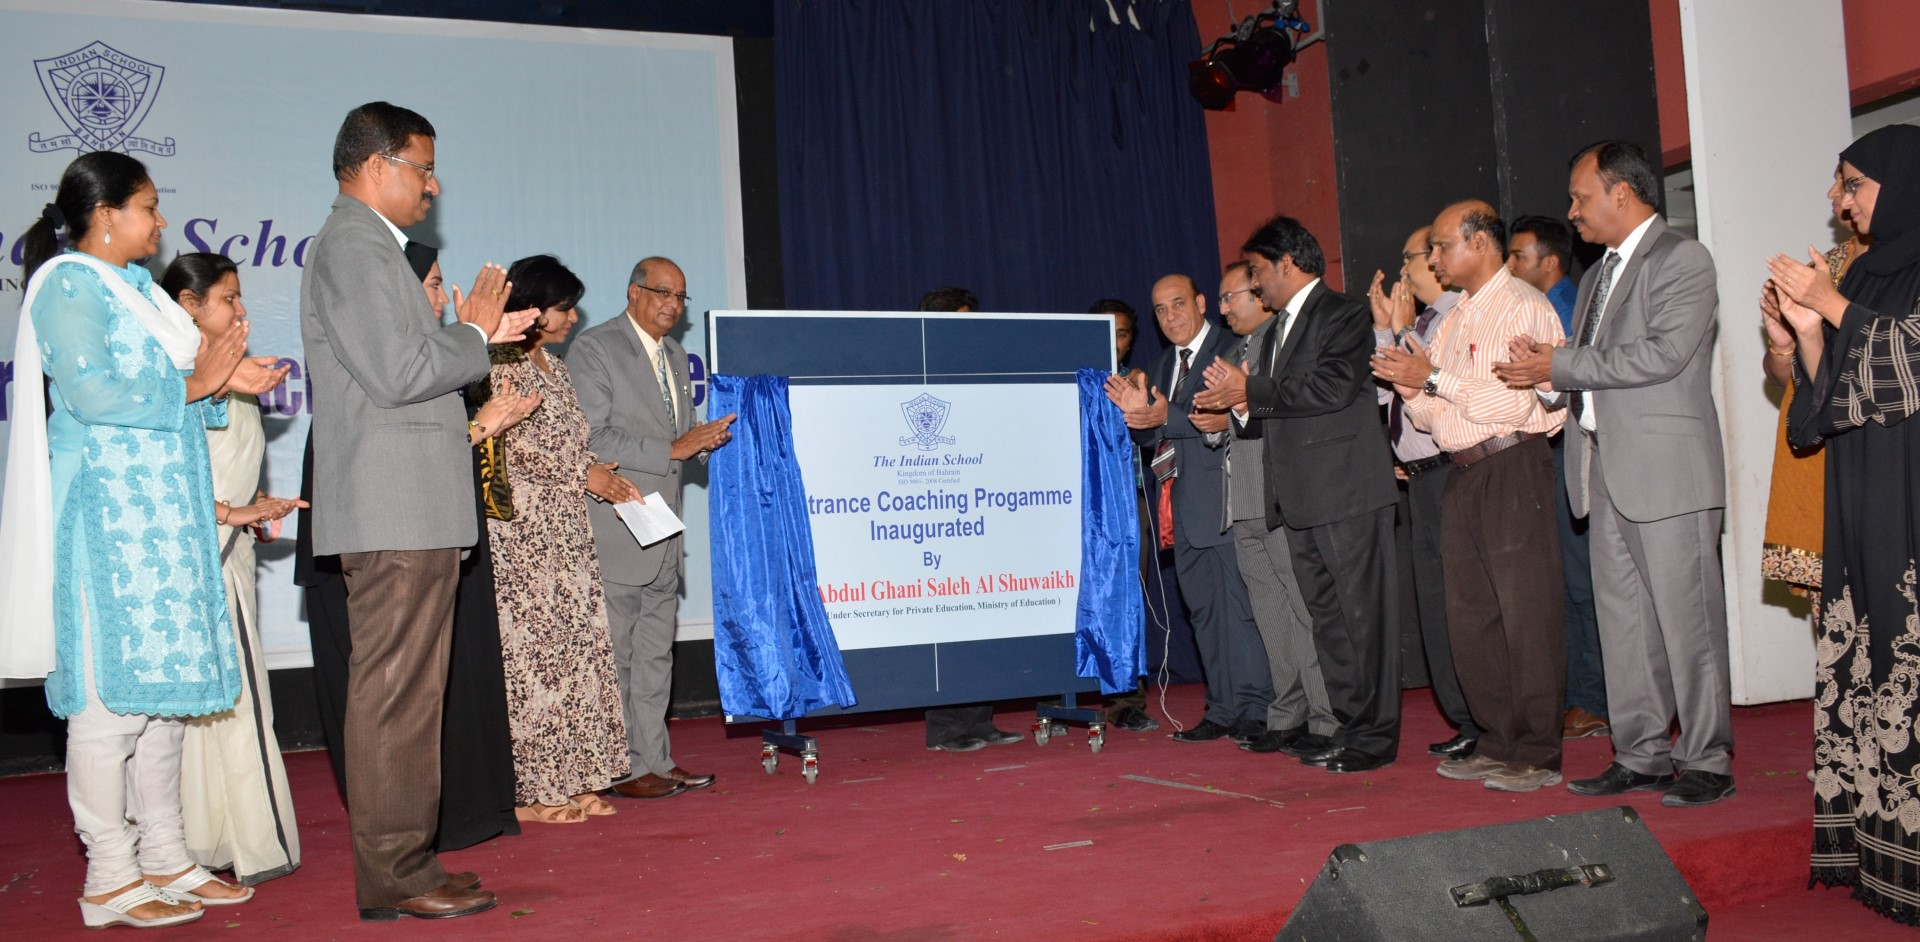 Inaugurated Entrance Coaching Programme